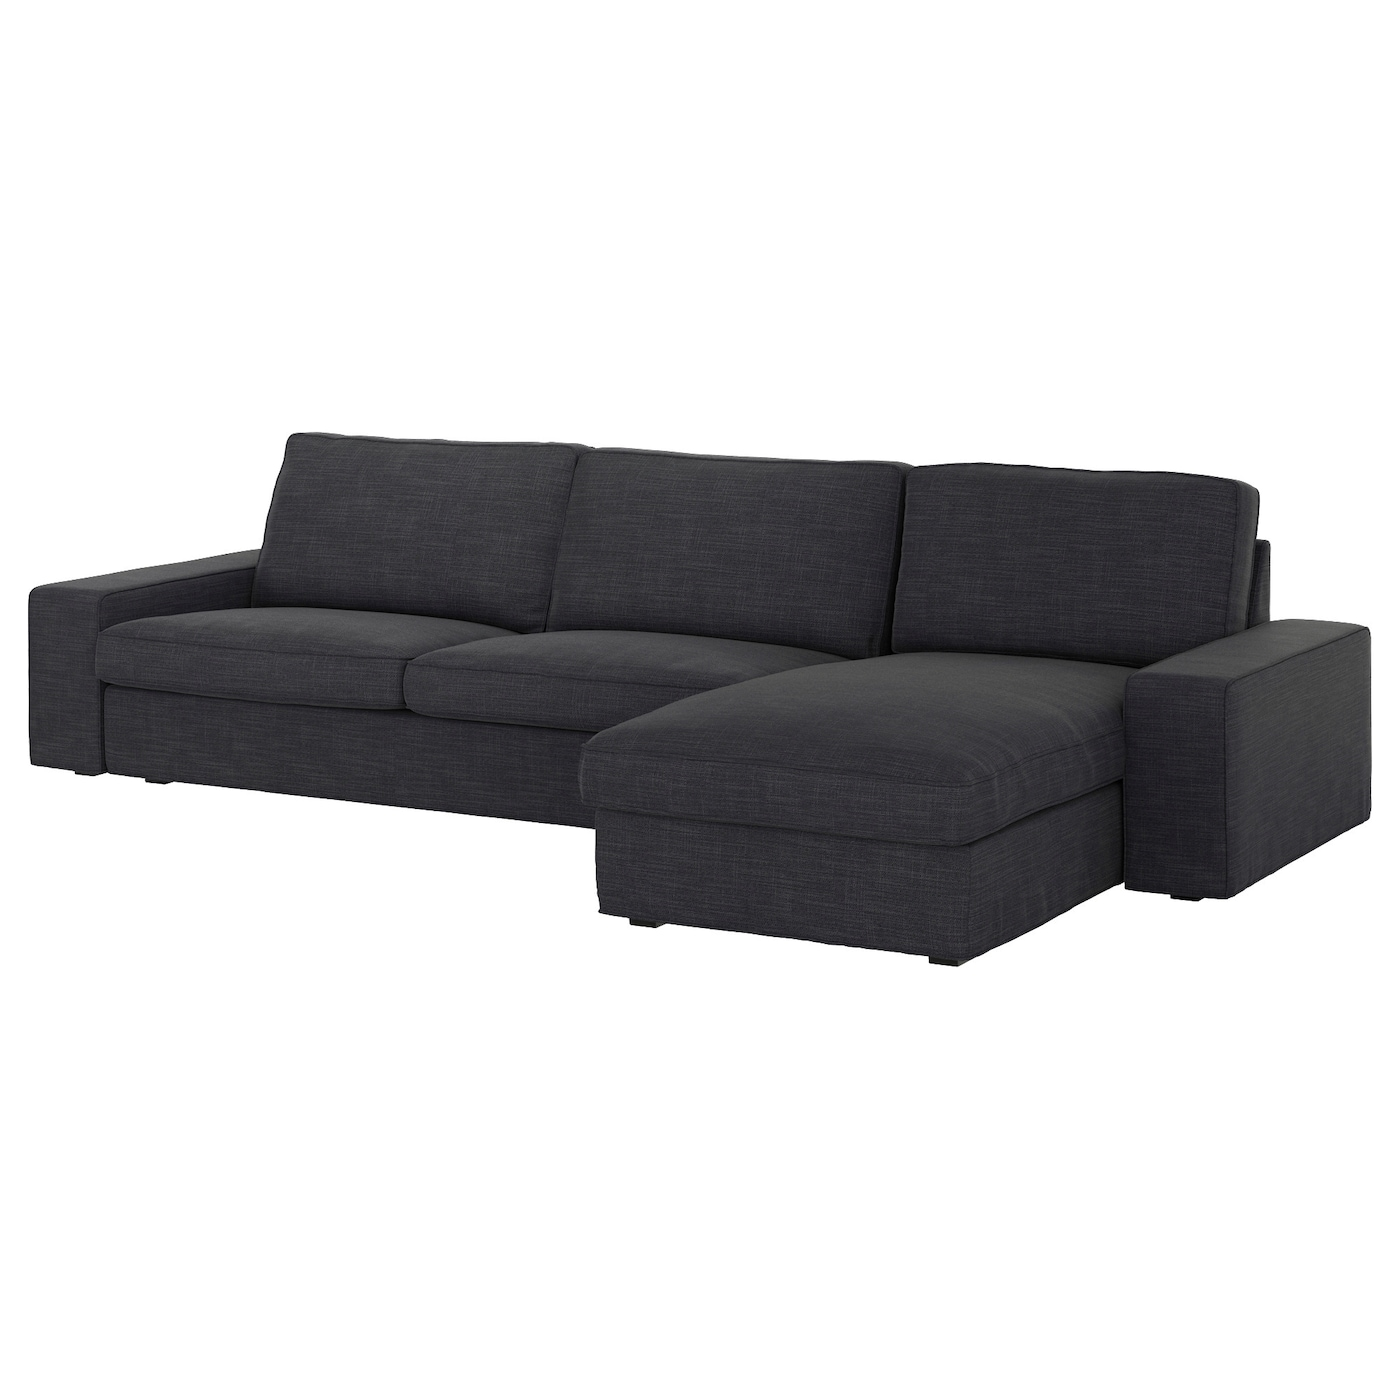 kivik three seat sofa and chaise longue hillared anthracite ikea. Black Bedroom Furniture Sets. Home Design Ideas